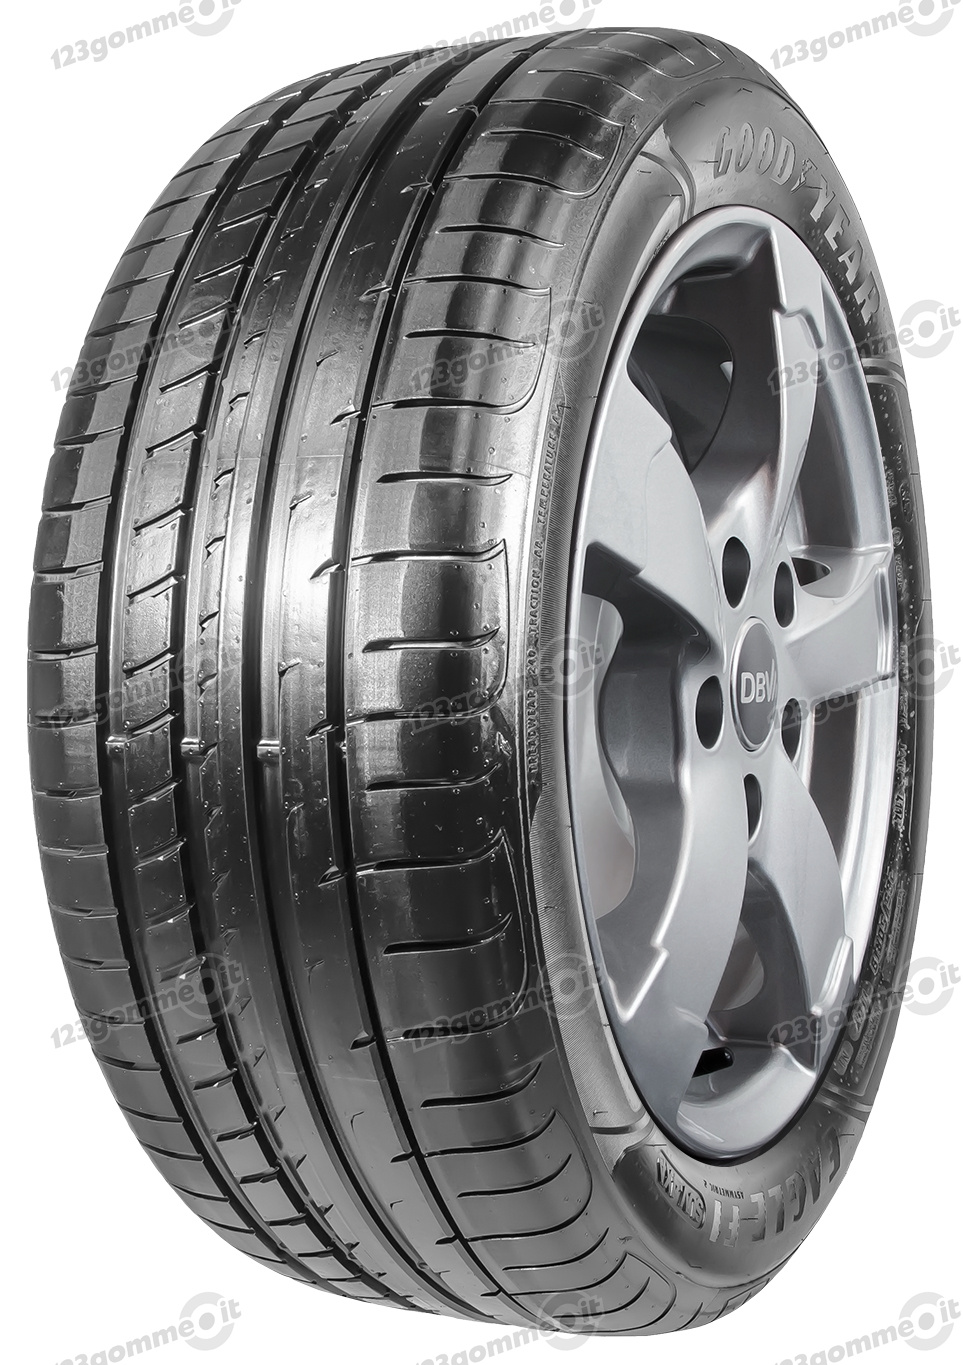 225/35 R19 88Y Eagle F1 Asymmetric XL ROF FP  Eagle F1 Asymmetric XL ROF FP